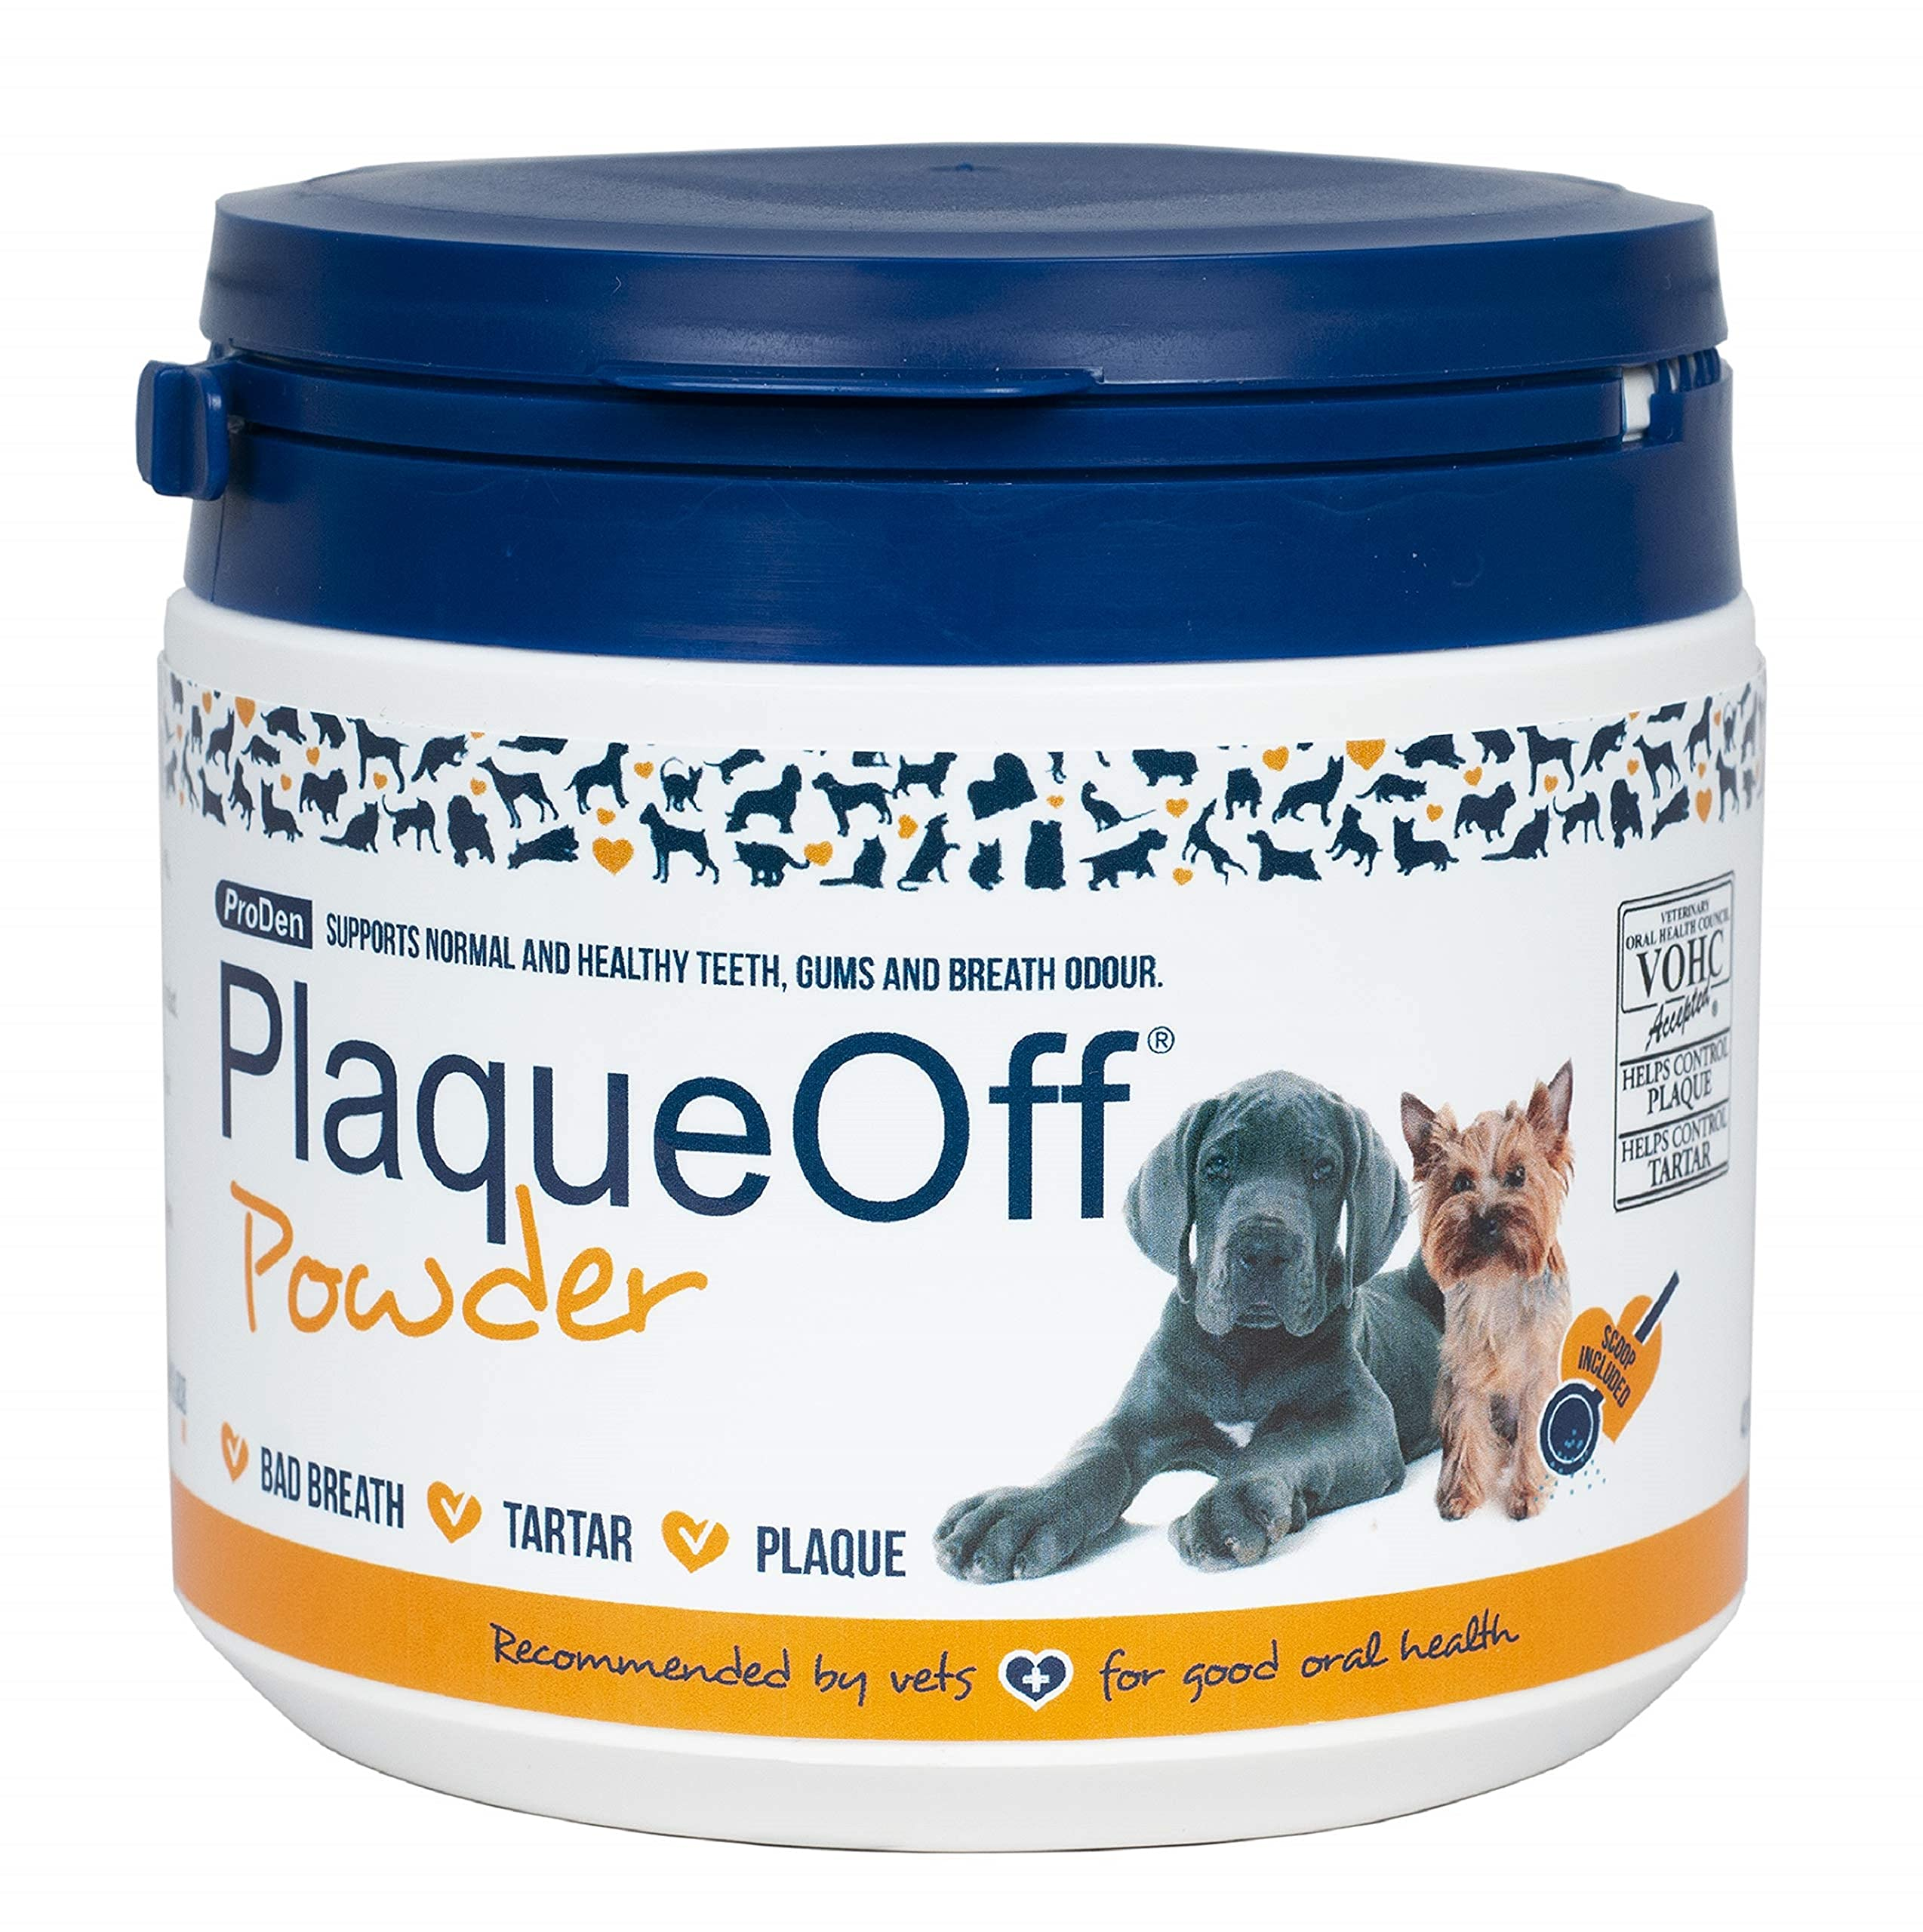 ProDen PlaqueOff Powder – Supports Normal, Healthy Teeth, Gums, and Breath Odor in Pets – 420 g